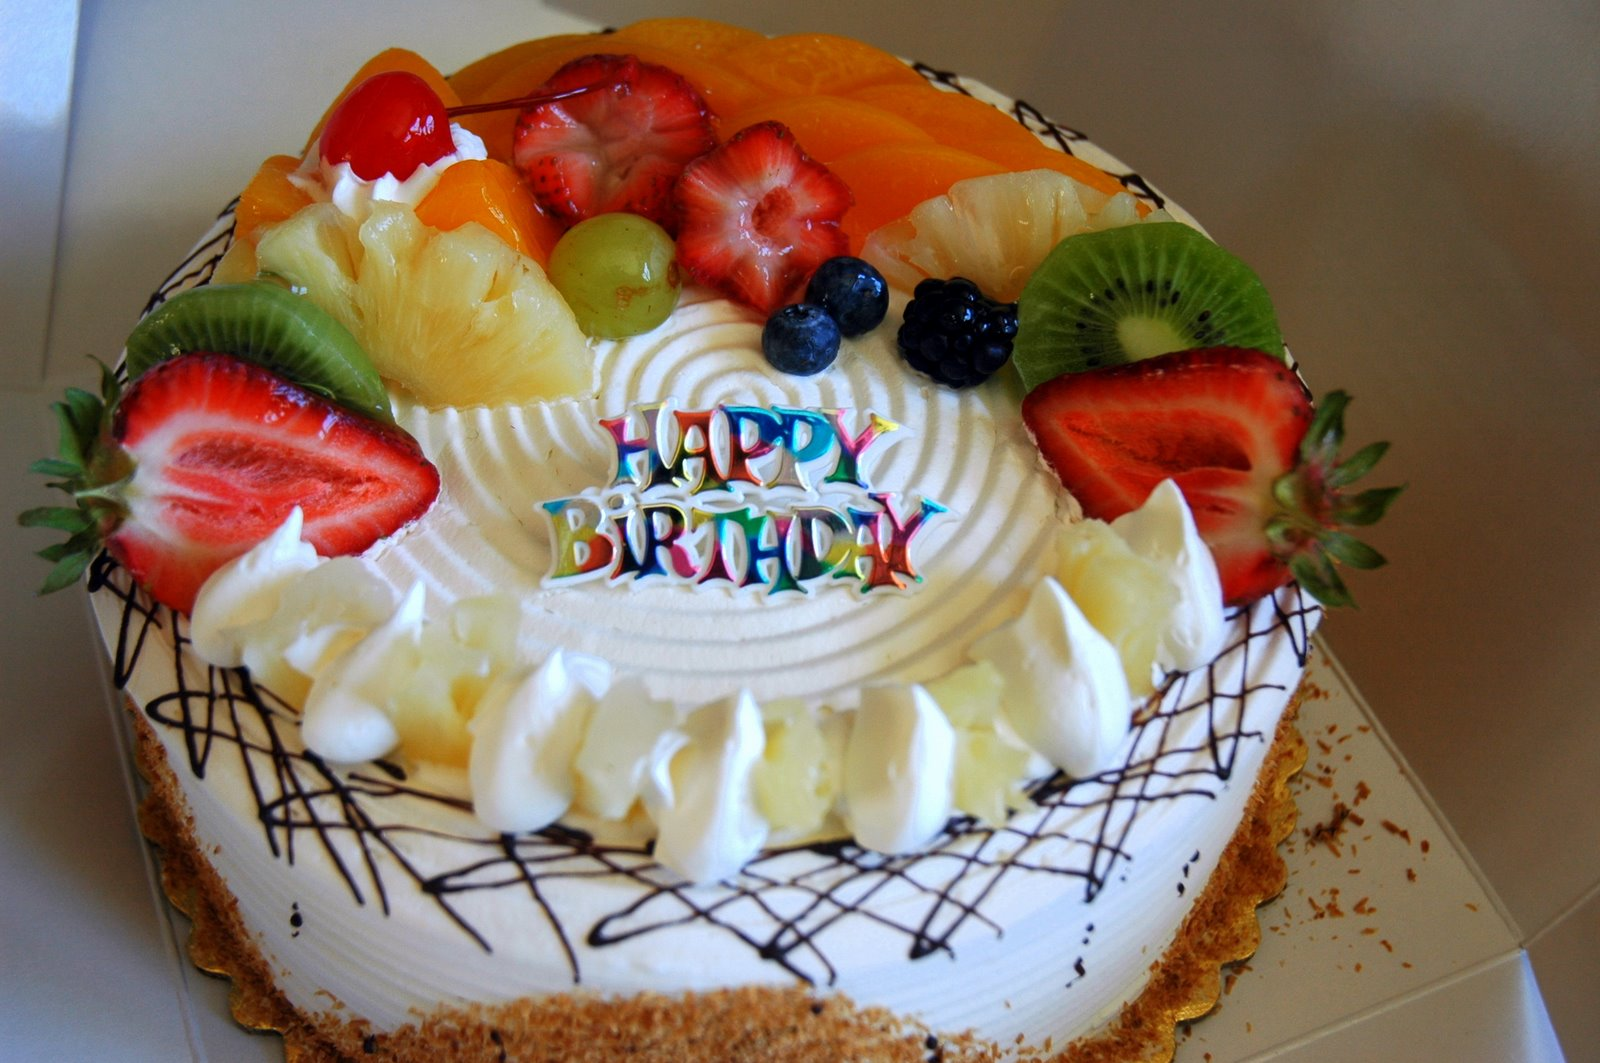 Sweet Birthday Cake Hd Images : greeting cards for birthday happy birthday wishes images ...